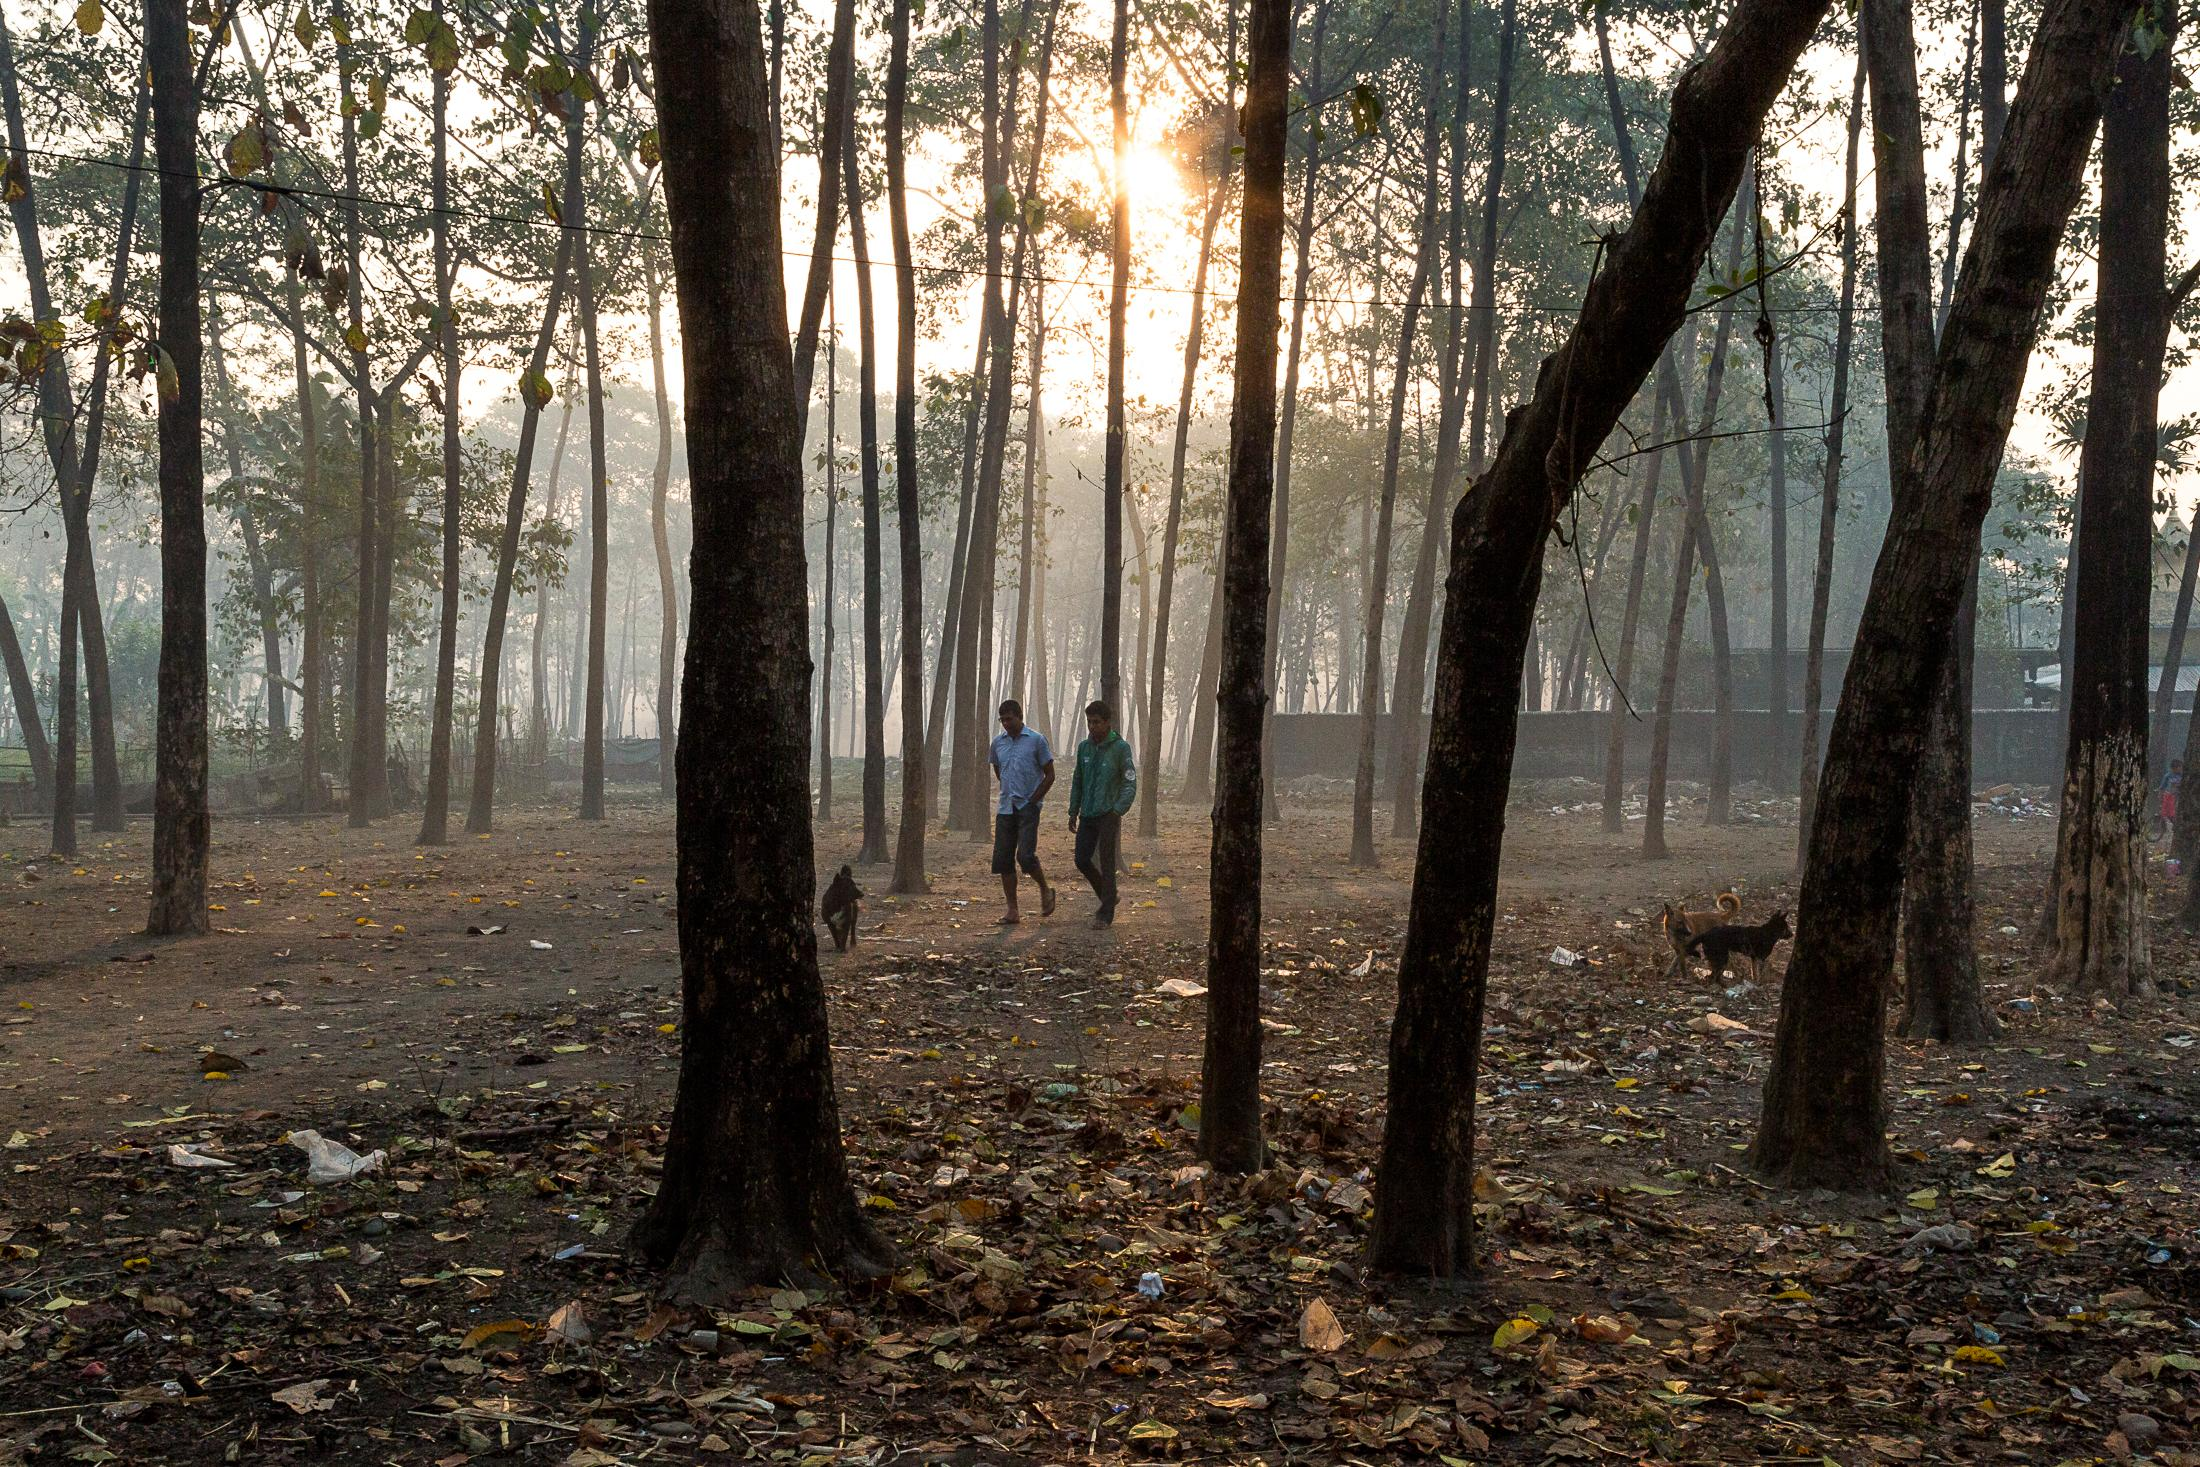 BELDANGI, NEPAL - MARCH 13: Two Bhutanese refugees walk early in the morning in the middle of the forests surrounding the Beldangi 2 refugee camp on March 13, 2015 in Beldangi, Nepal. Photo: © Omar Havana / Getty Images.